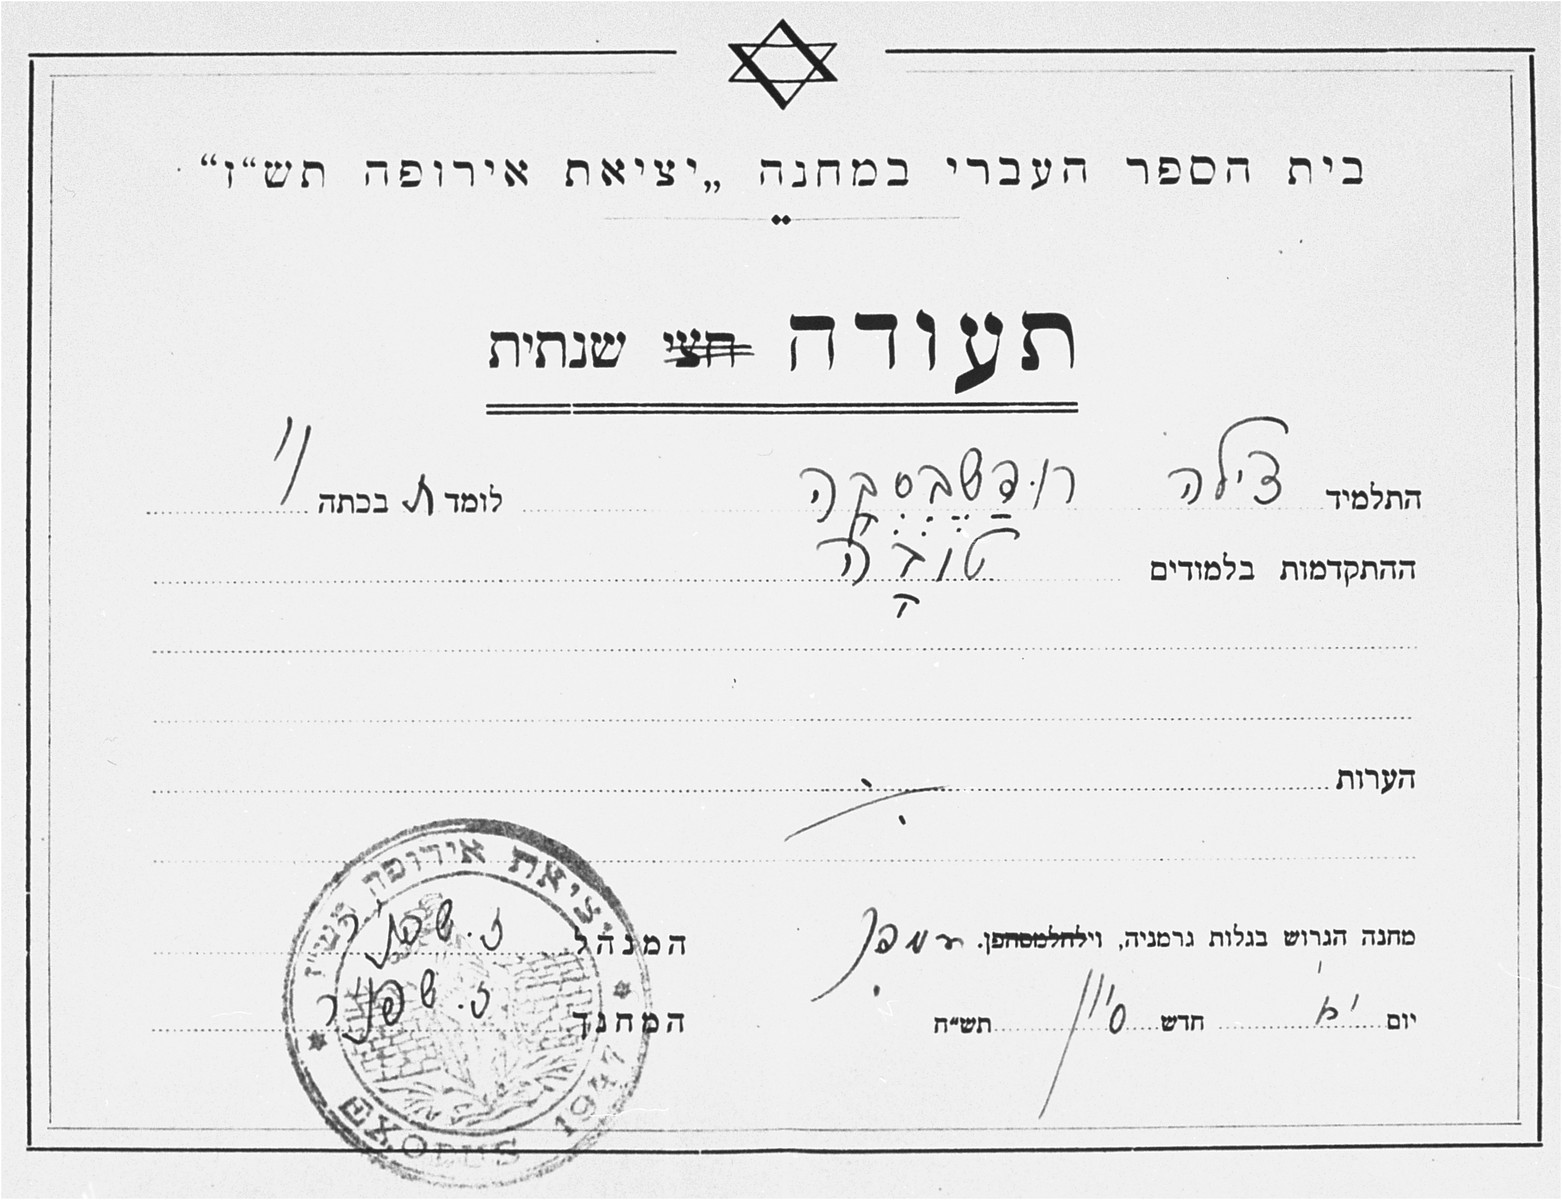 Report card issued to Cilia Rudashevsky by the Hebrew school in the Poppendorf displaced persons camp.